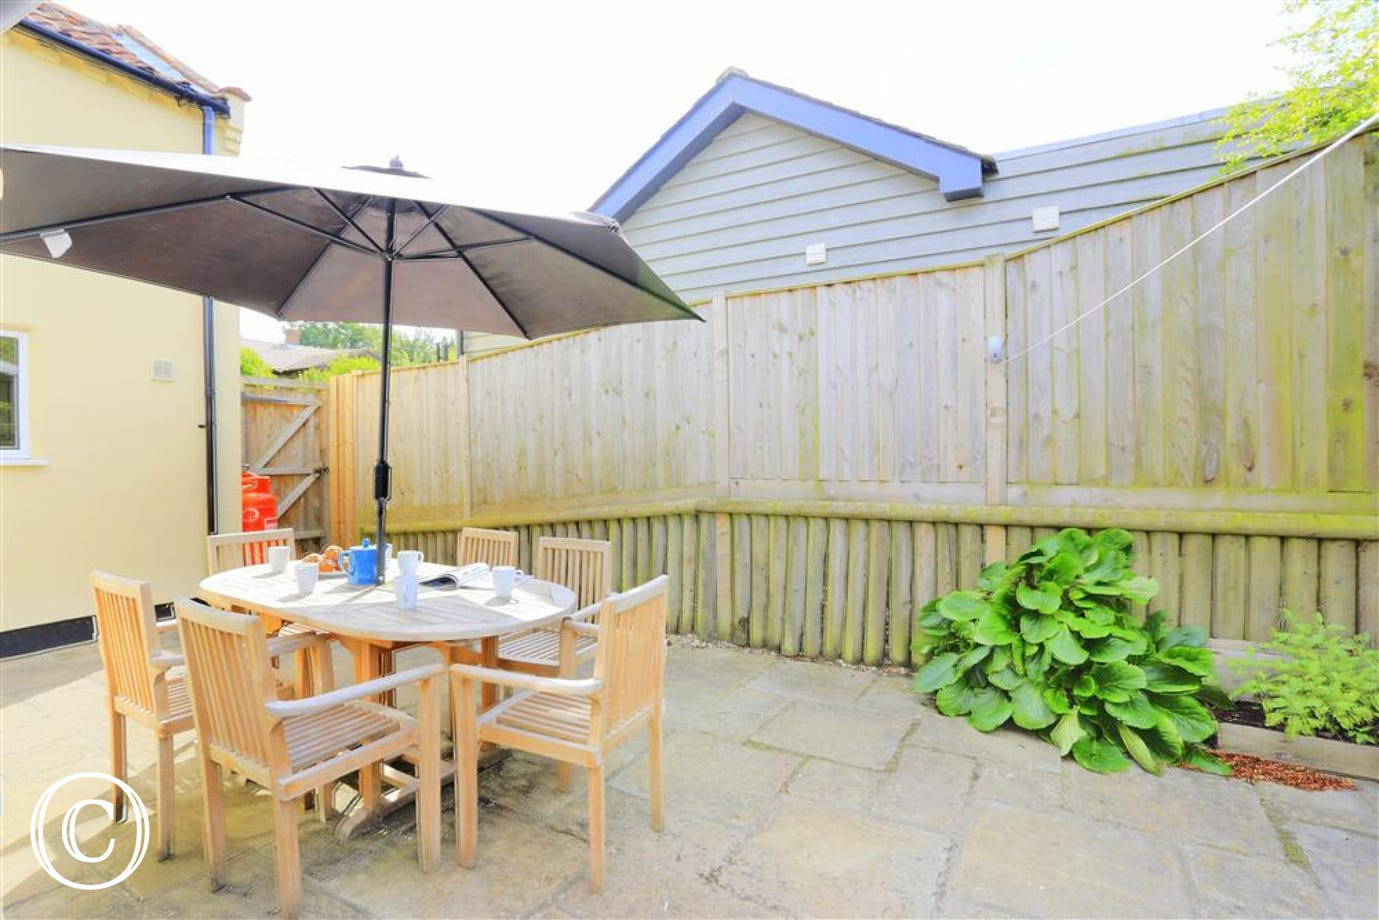 Enjoy the great outdoors at Garden House and socialise with your family and friends around this lovely garden table and chairs.